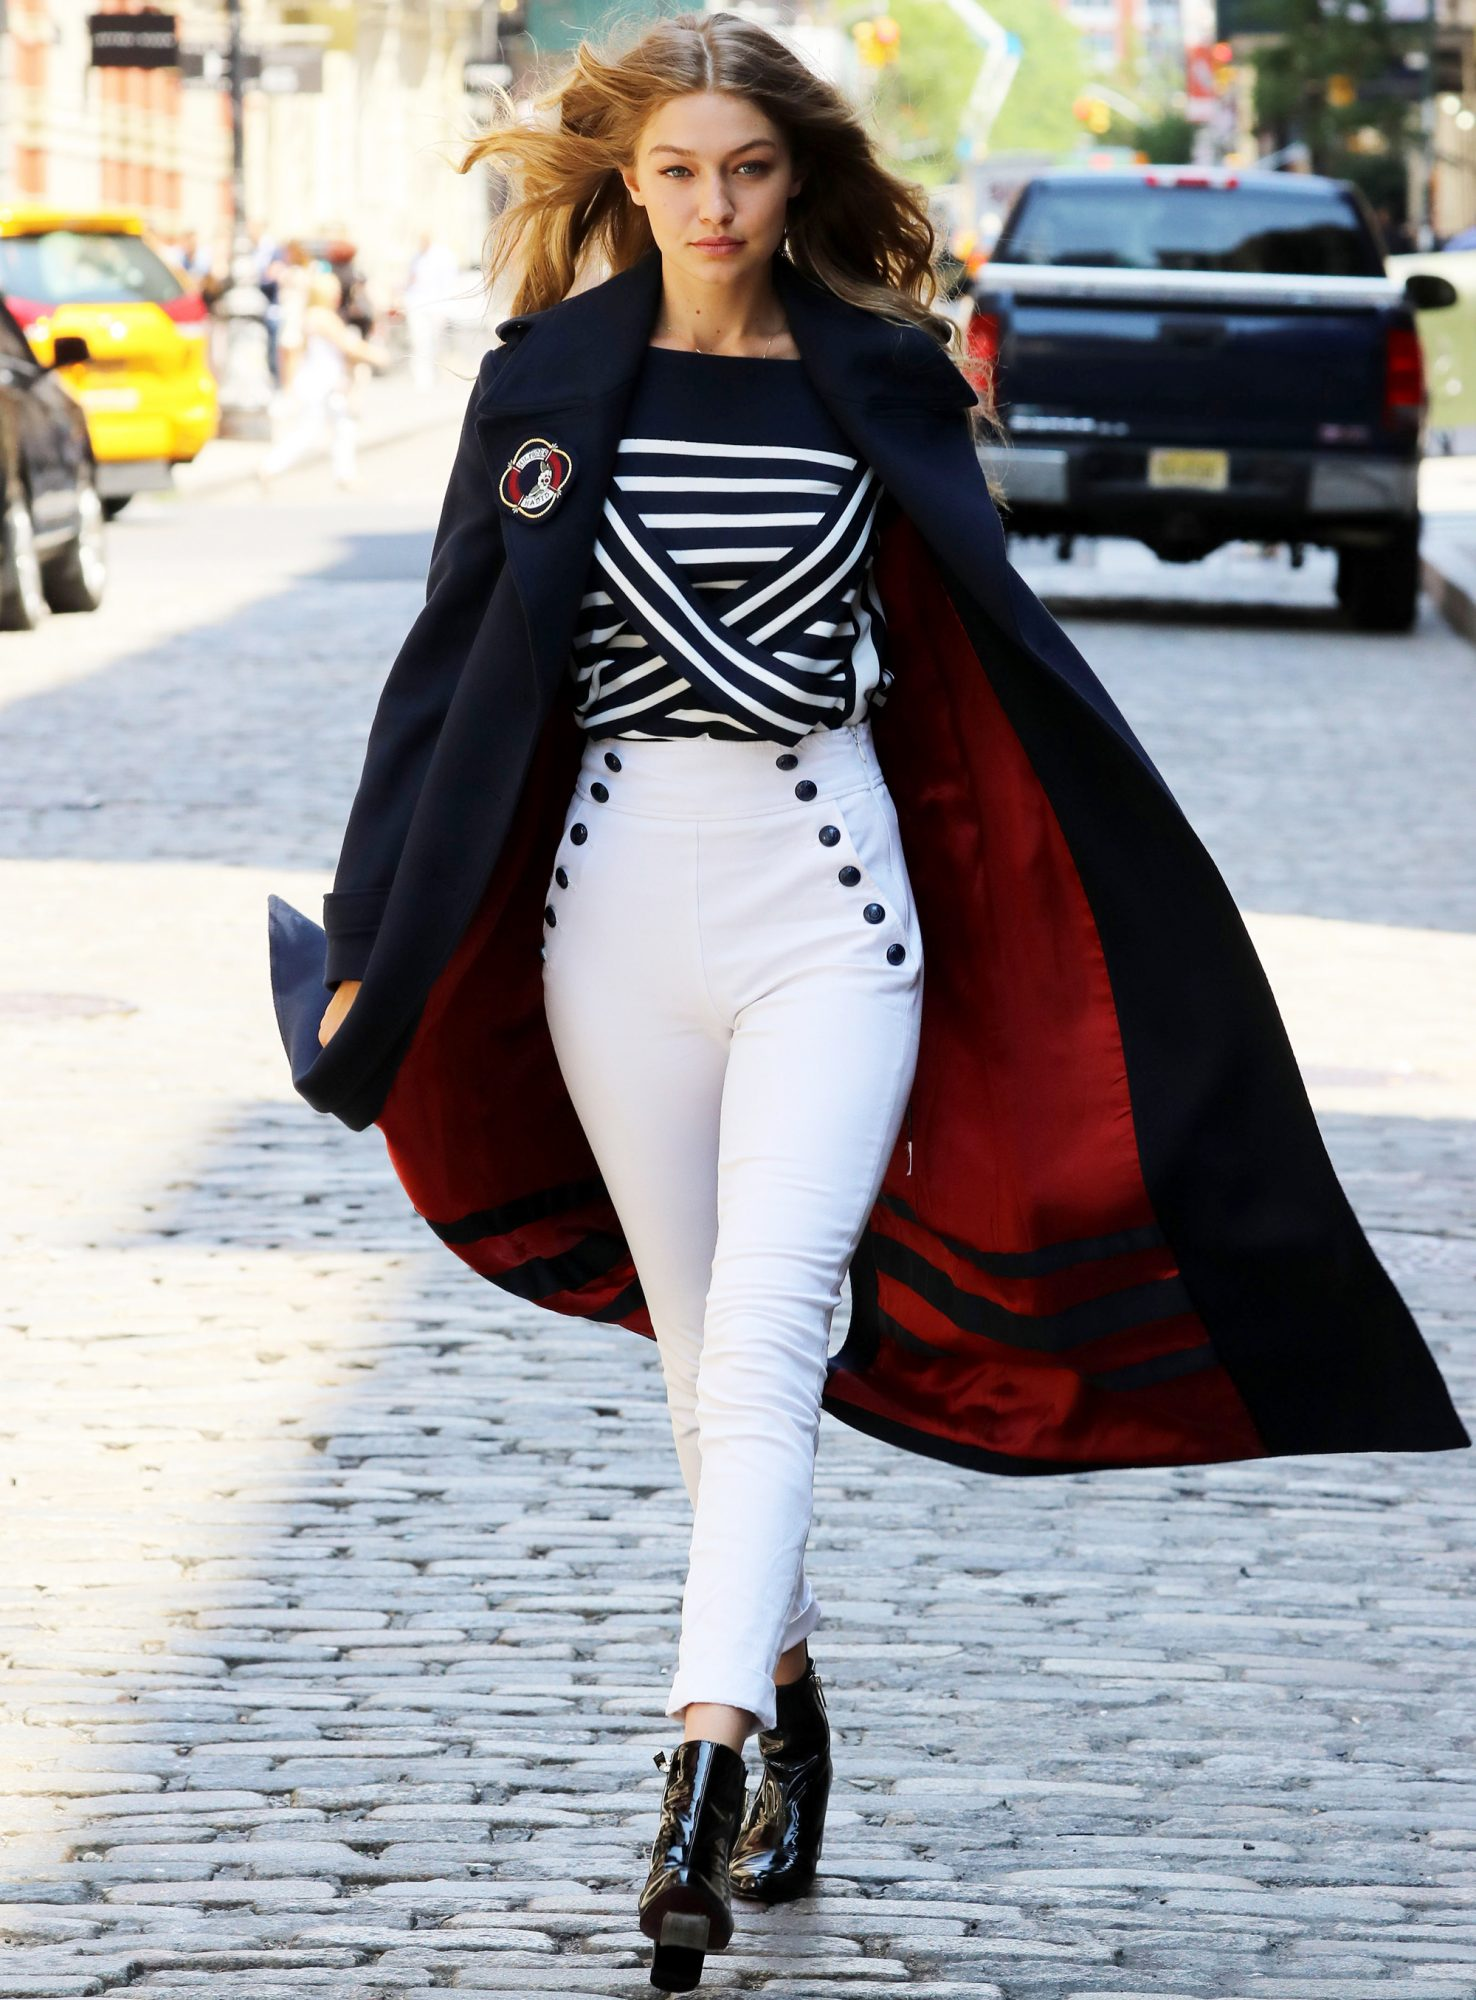 Gigi Hadid Wears Nautical Tommy Hilfiger Outfit In N Y C